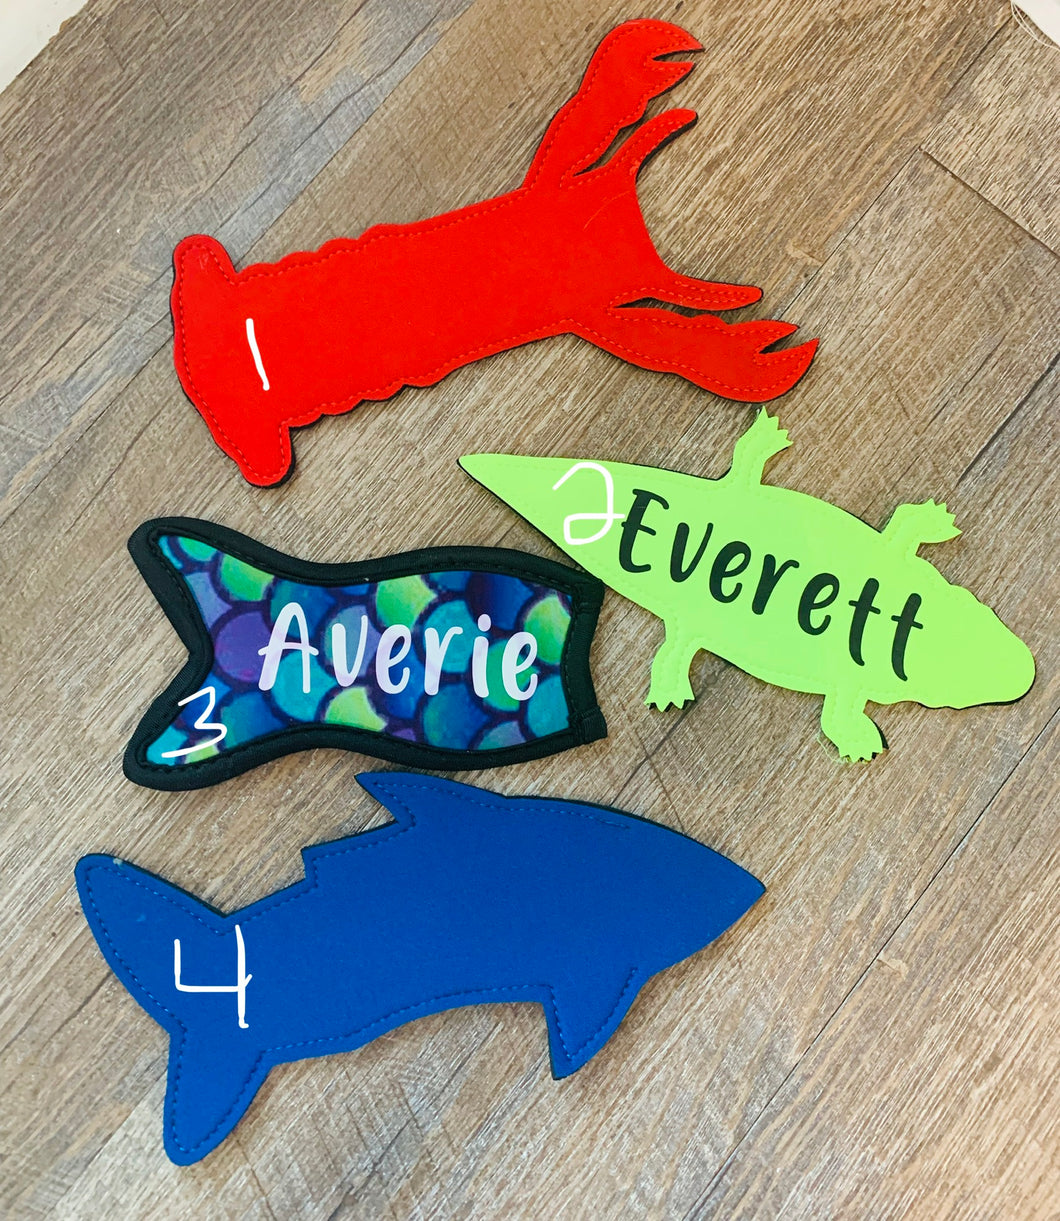 Popsicle koozies in fun shapes! Personalized popsicle holders! Lobster, alligator, shark, mermaid - Mavictoria Designs Hot Press Express